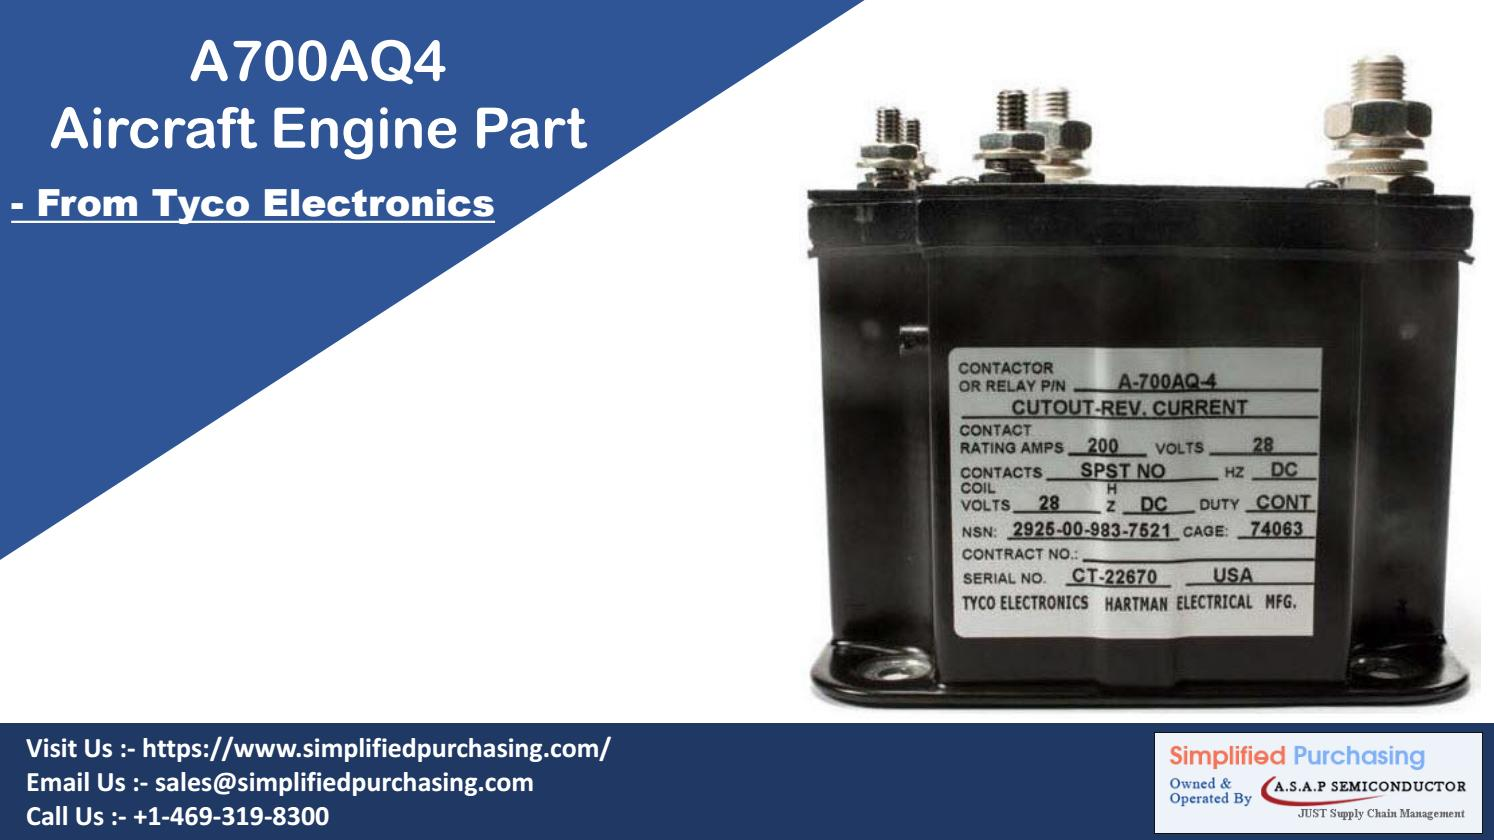 A700aq4 Cutout Relay Engine Generator By Tyco Electronics Asap Current Rating Semiconductor Issuu